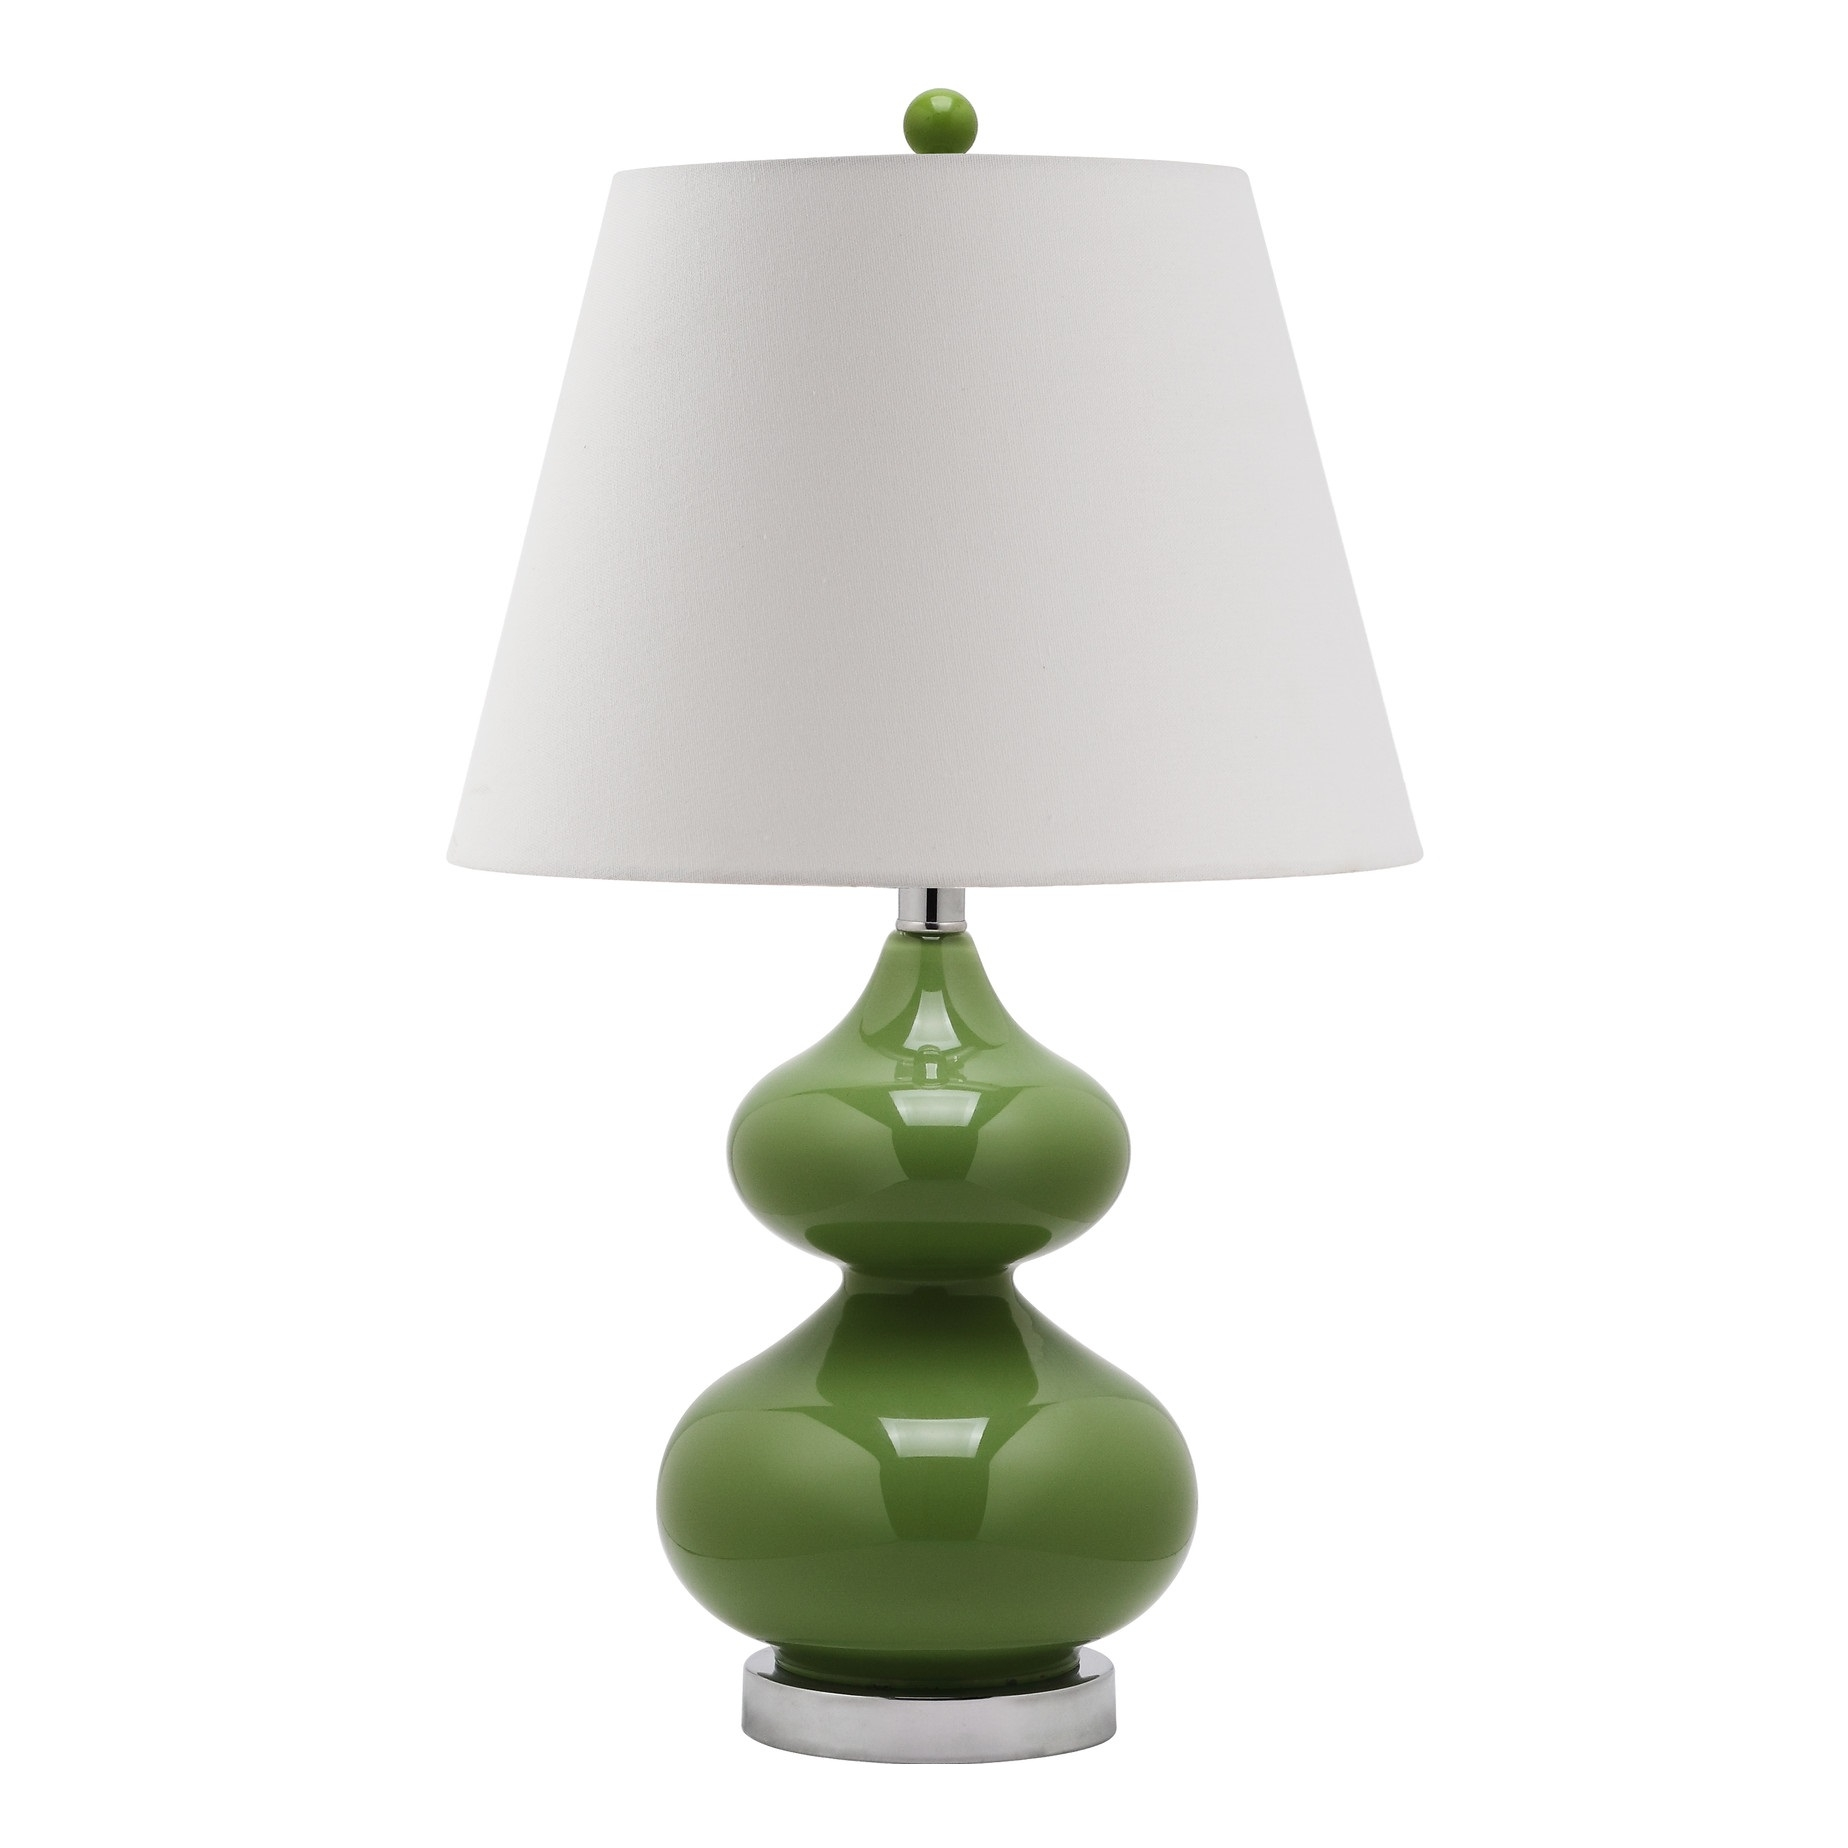 Safavieh Eva Double Gourd Table Lamp In Fern Green L